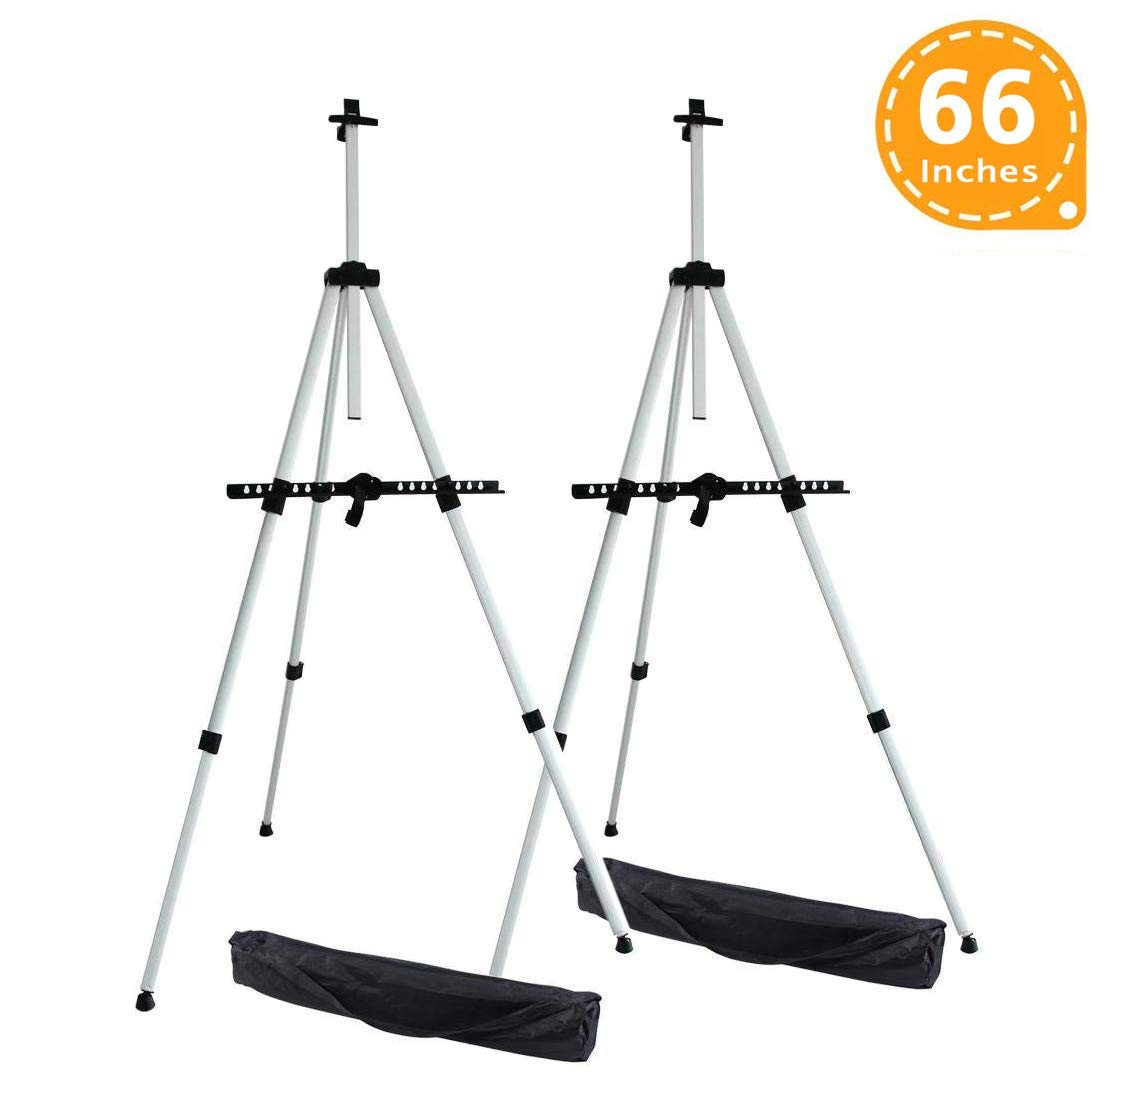 Artist Easel, Ohuhu 2-Pack 66'' Aluminum Field Easel Stand with Carrying Bag for Table-top/Floor, Art Easels with Adjustable Height from 21-Inch to 66-Inch, Back to School Art Supplies